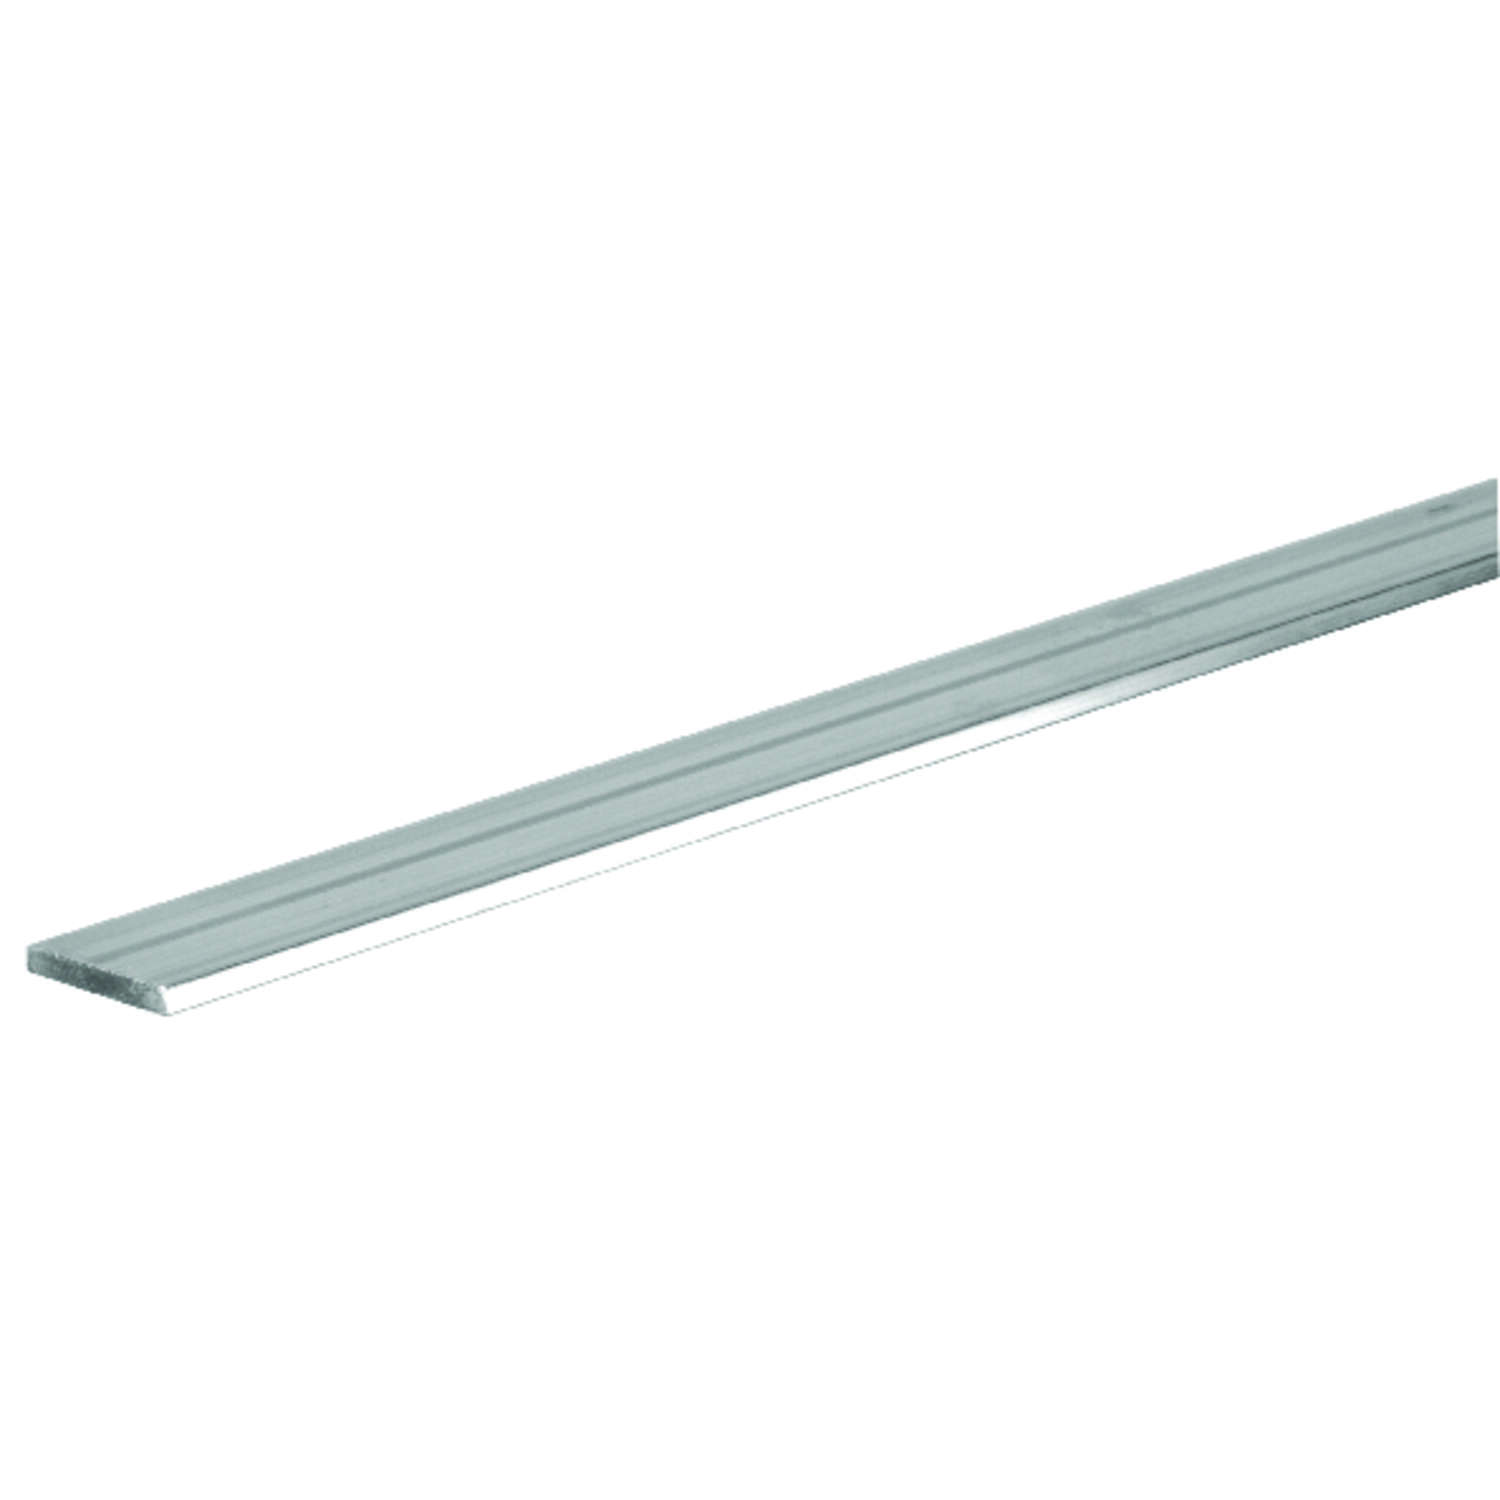 Boltmaster  0.125 in.  x 1 in. W x 8 ft. L Weldable Aluminum Flat Bar  1 pk